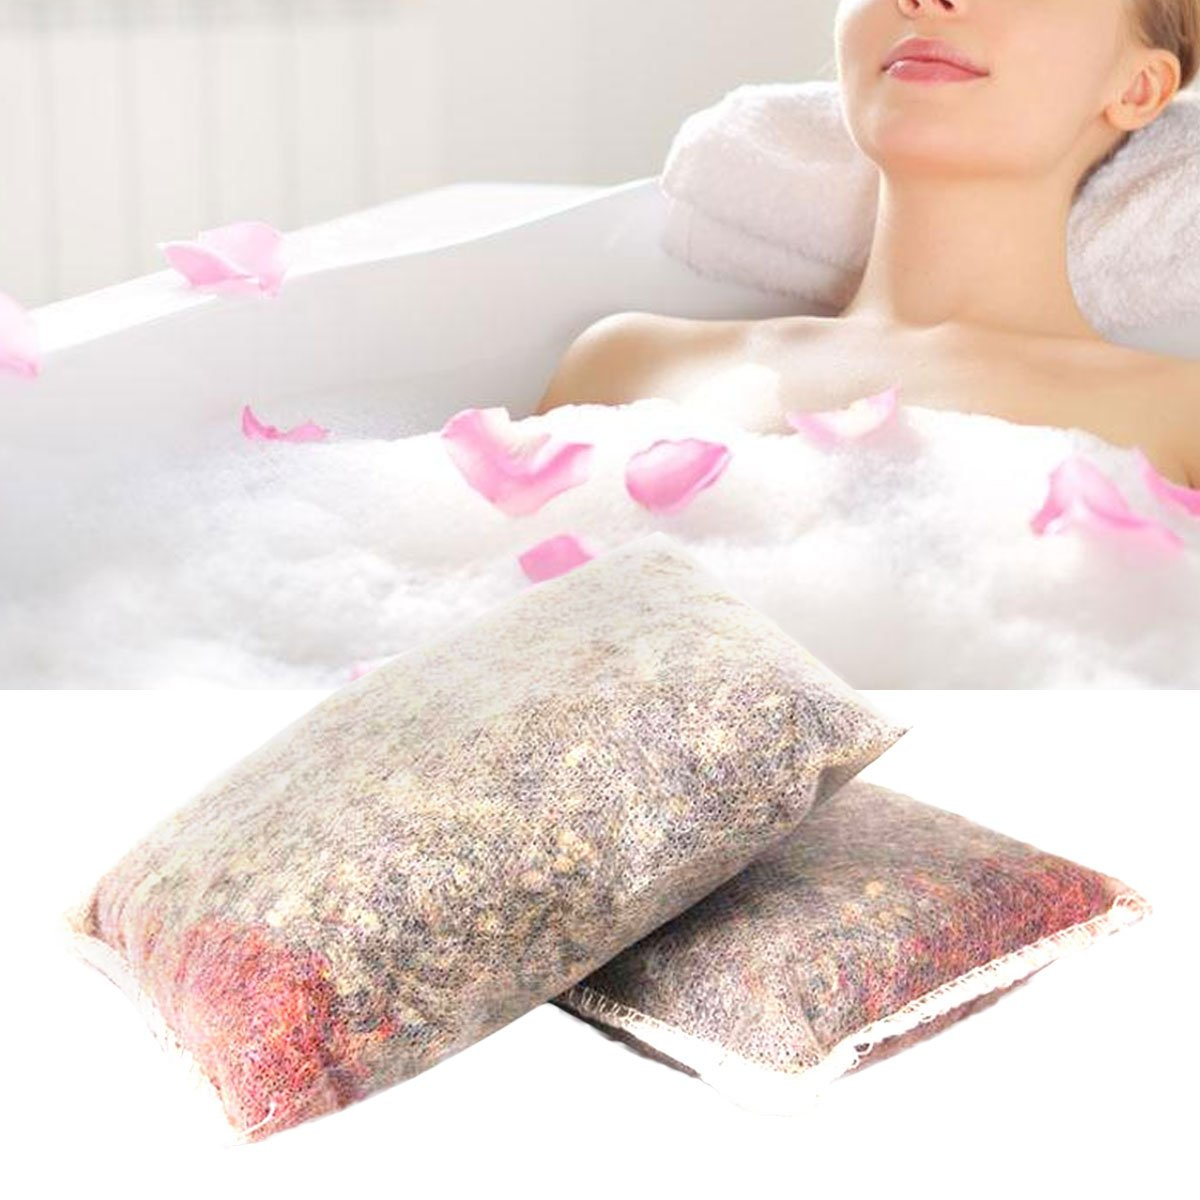 Lurrose 10PCS Chinese Medcine Bath Bags Original All-Natural Bath Tea to Help with Stress Sore Muscles and Better Sleep